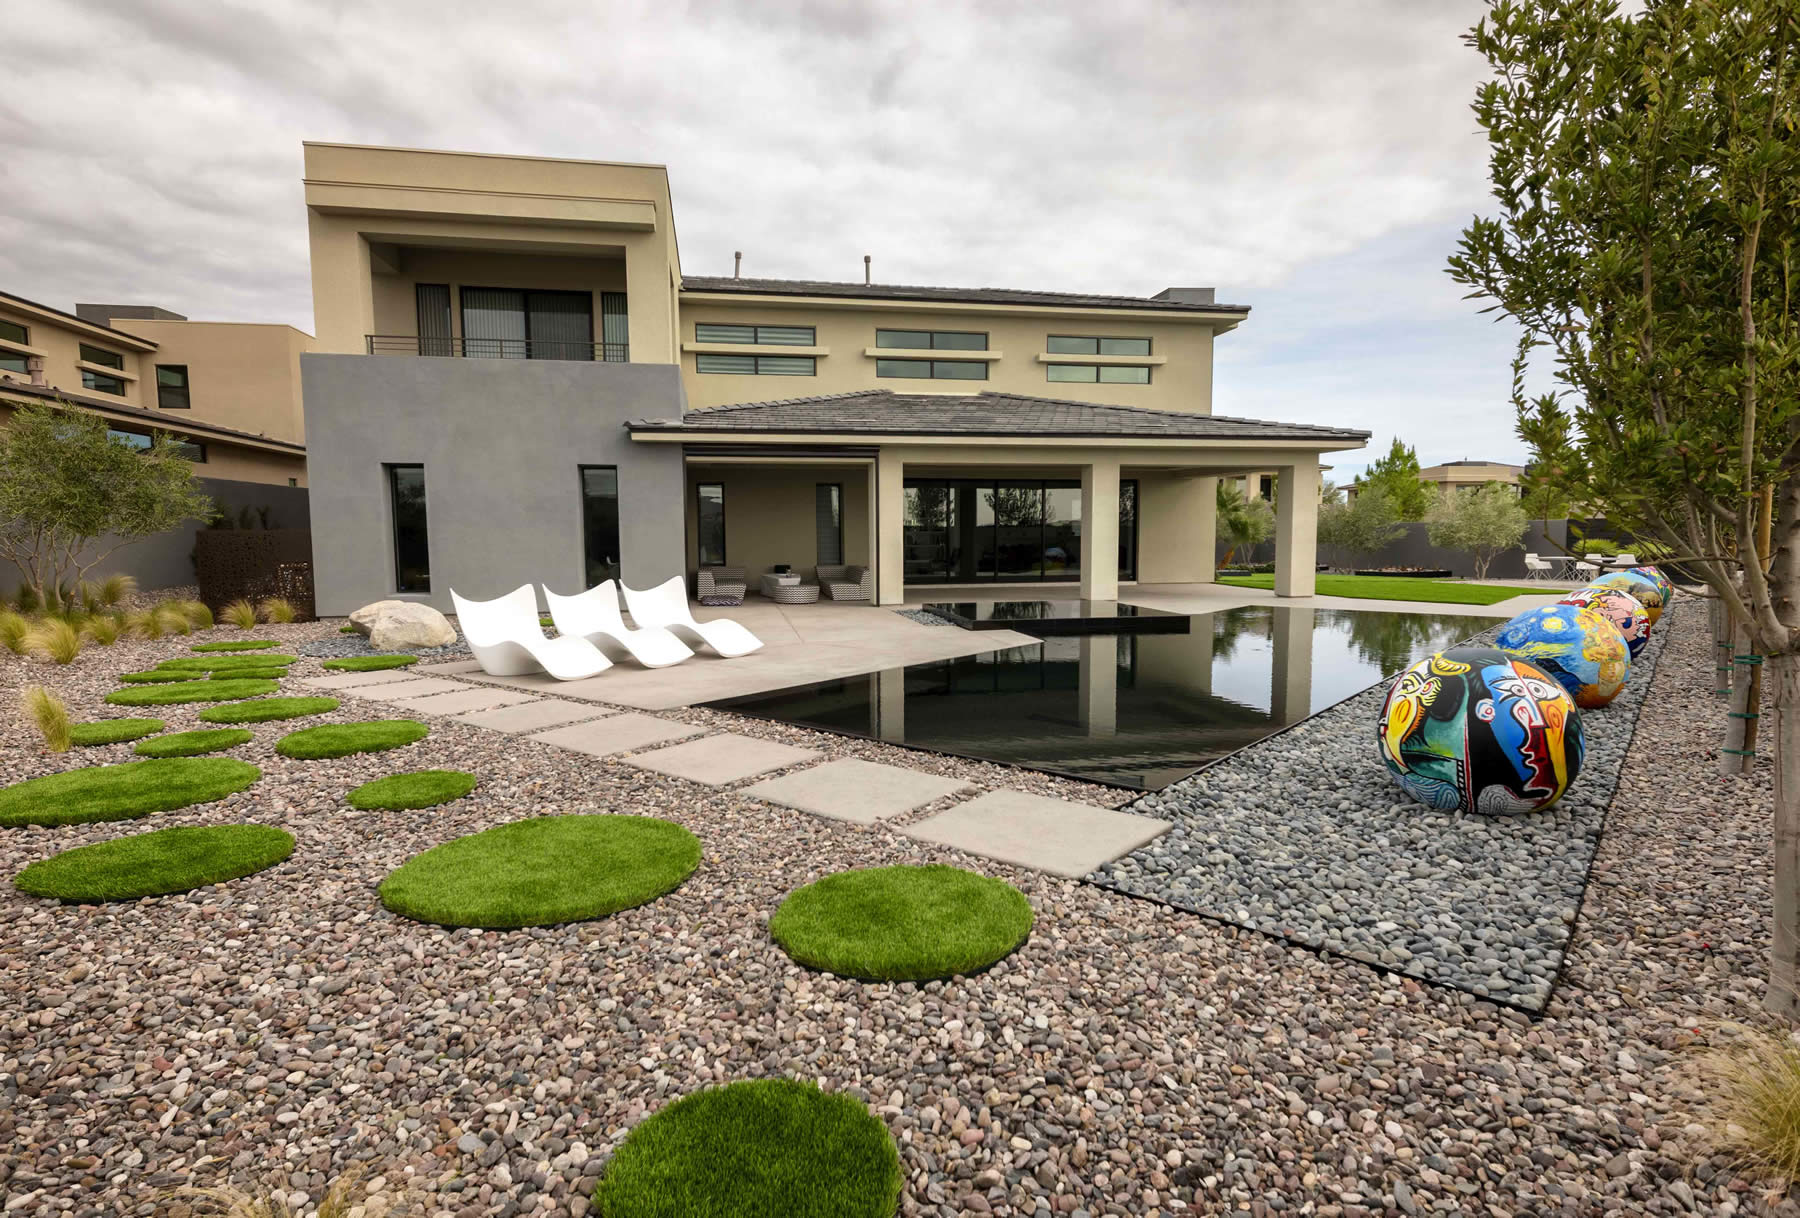 Award winning landscape architectural firm